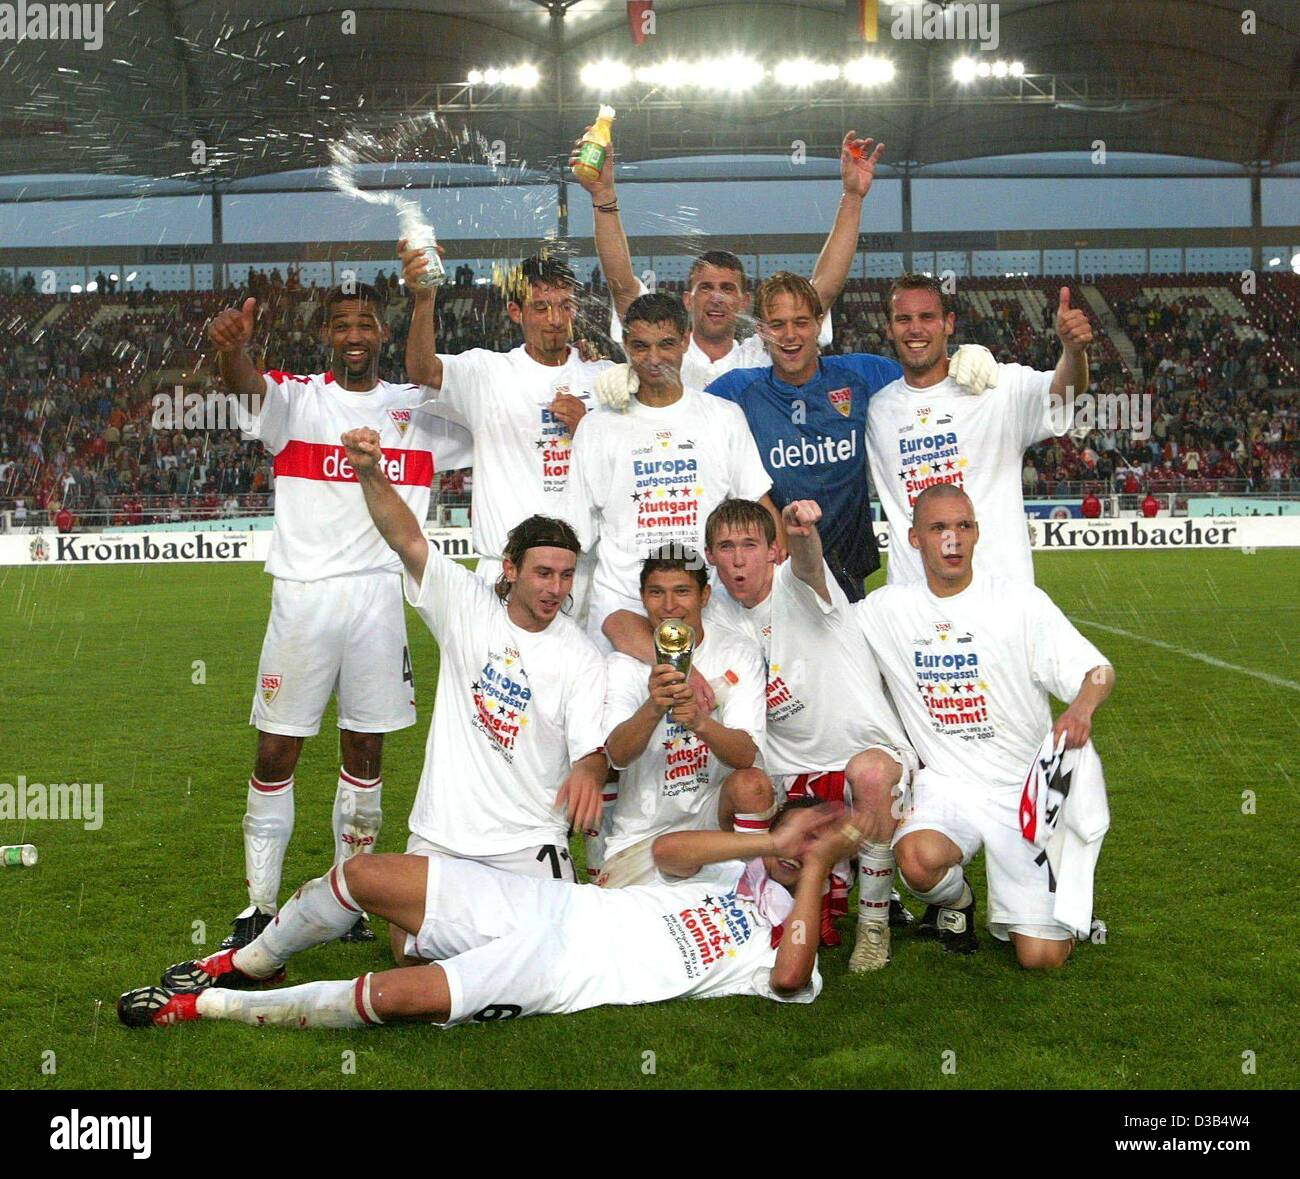 (dpa) - The players of VfB Stuttgart pose for a team picture in the Daimler stadium in Stuttgart, Germany, 27 August - Stock Image